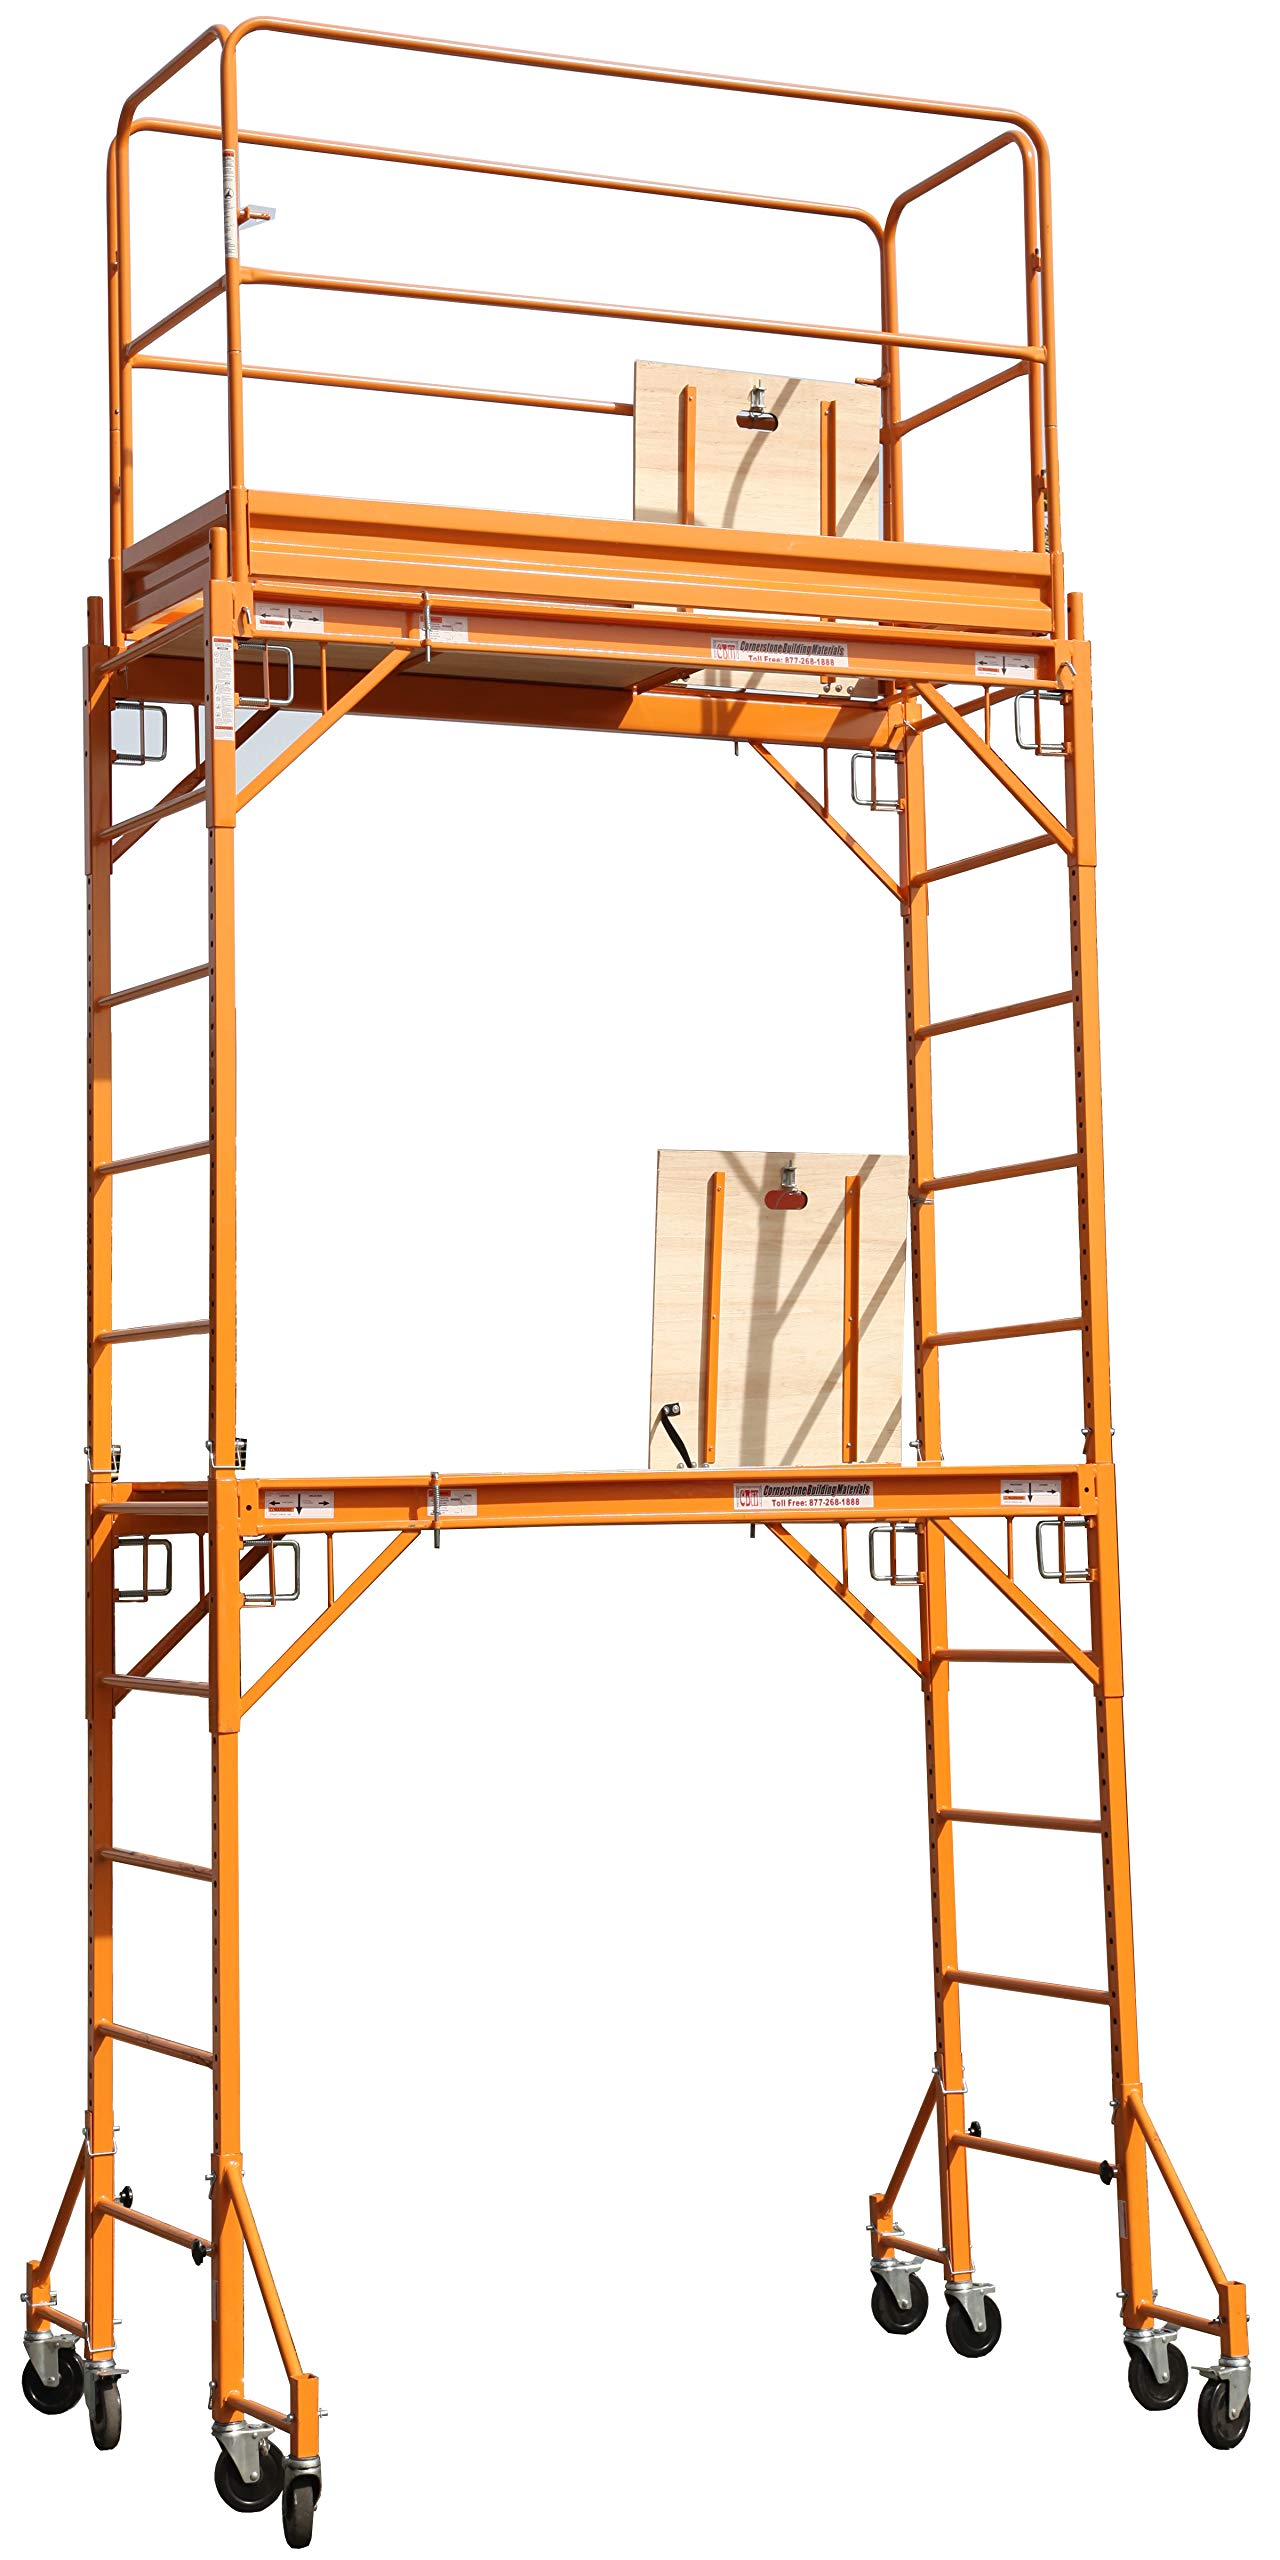 CBM Multipurpose Maxi Square Baker Style Scaffold Tower Package - 12 Feet, 1,000 Pound Capacity With Hatch Deck Guard Rail and Double U Lock by CBM Scaffold